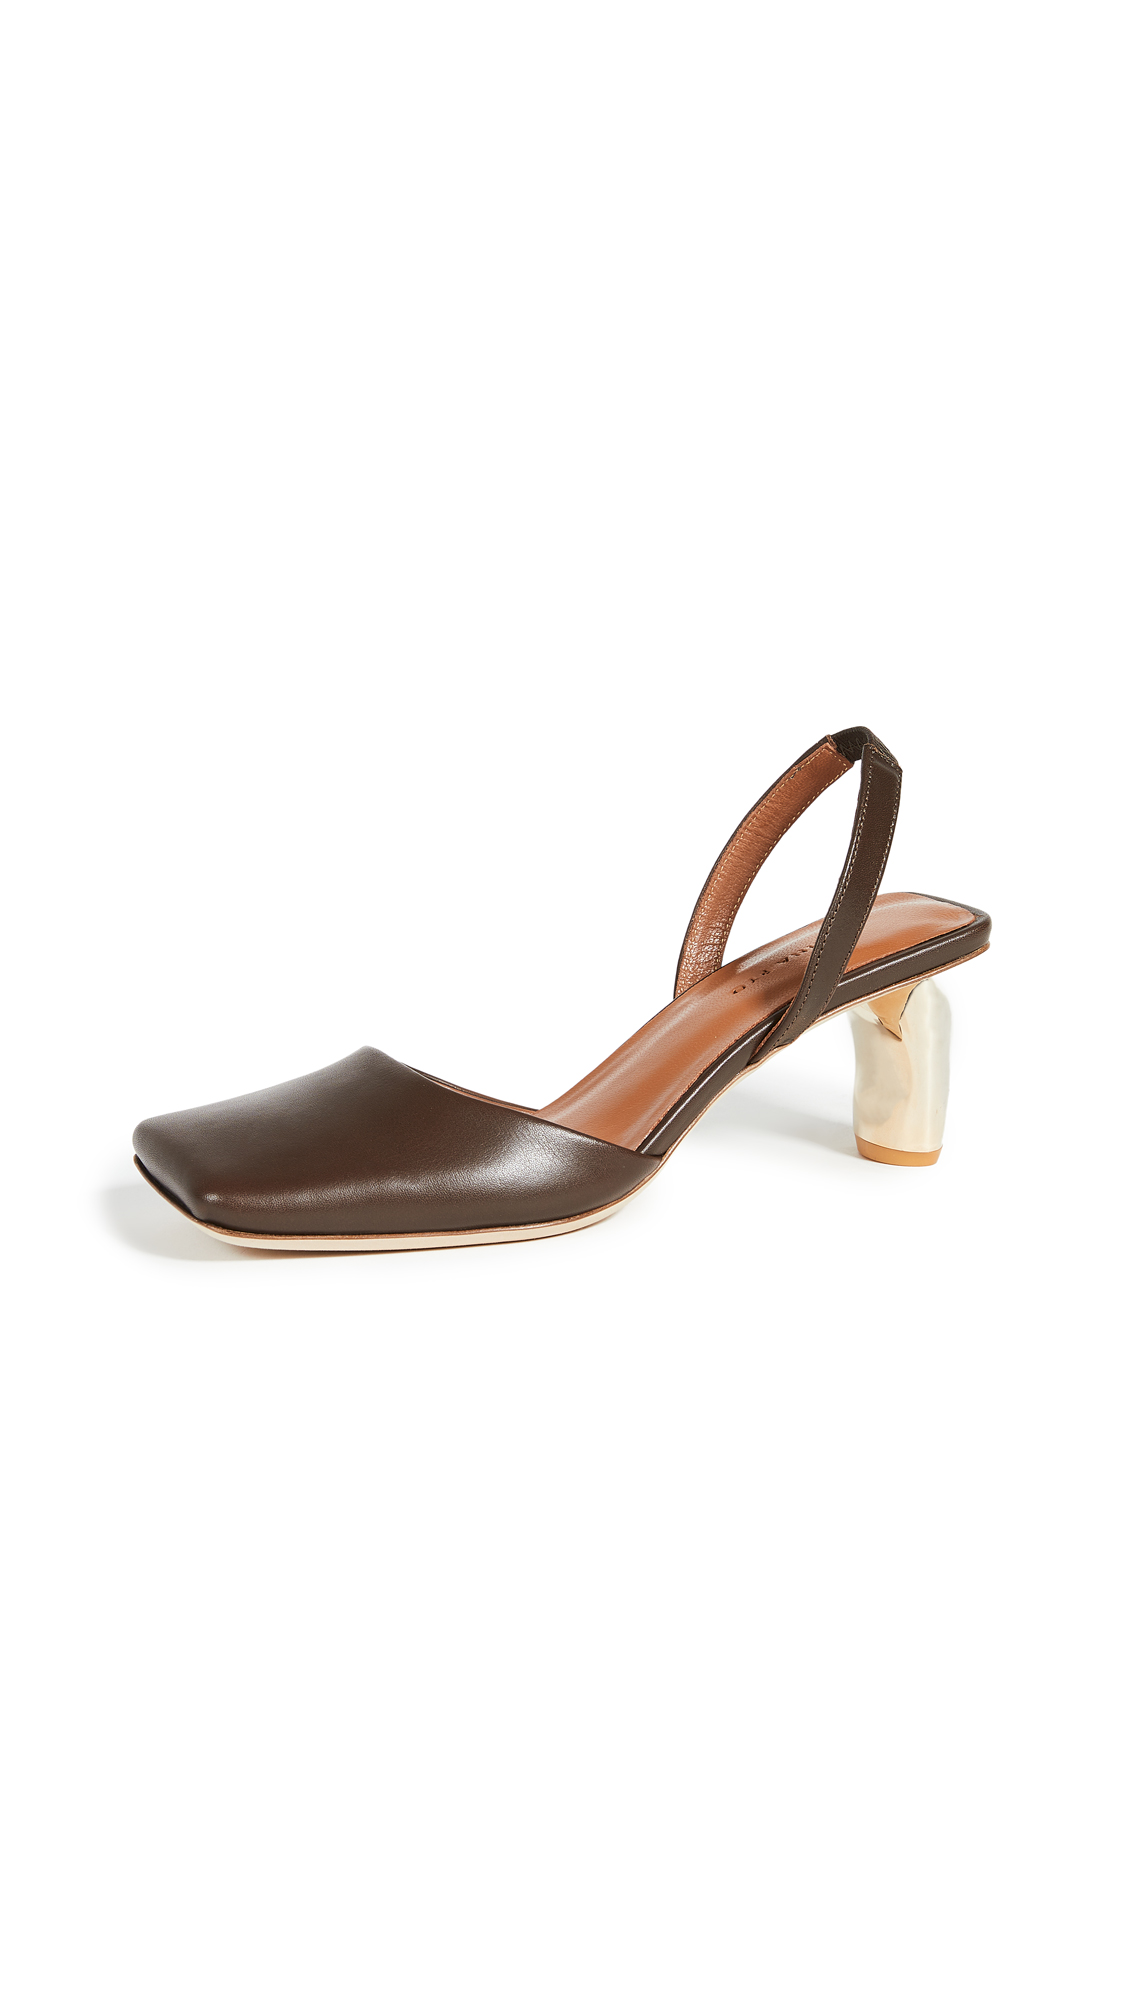 Rejina Pyo Luna Slingbacks 60mm